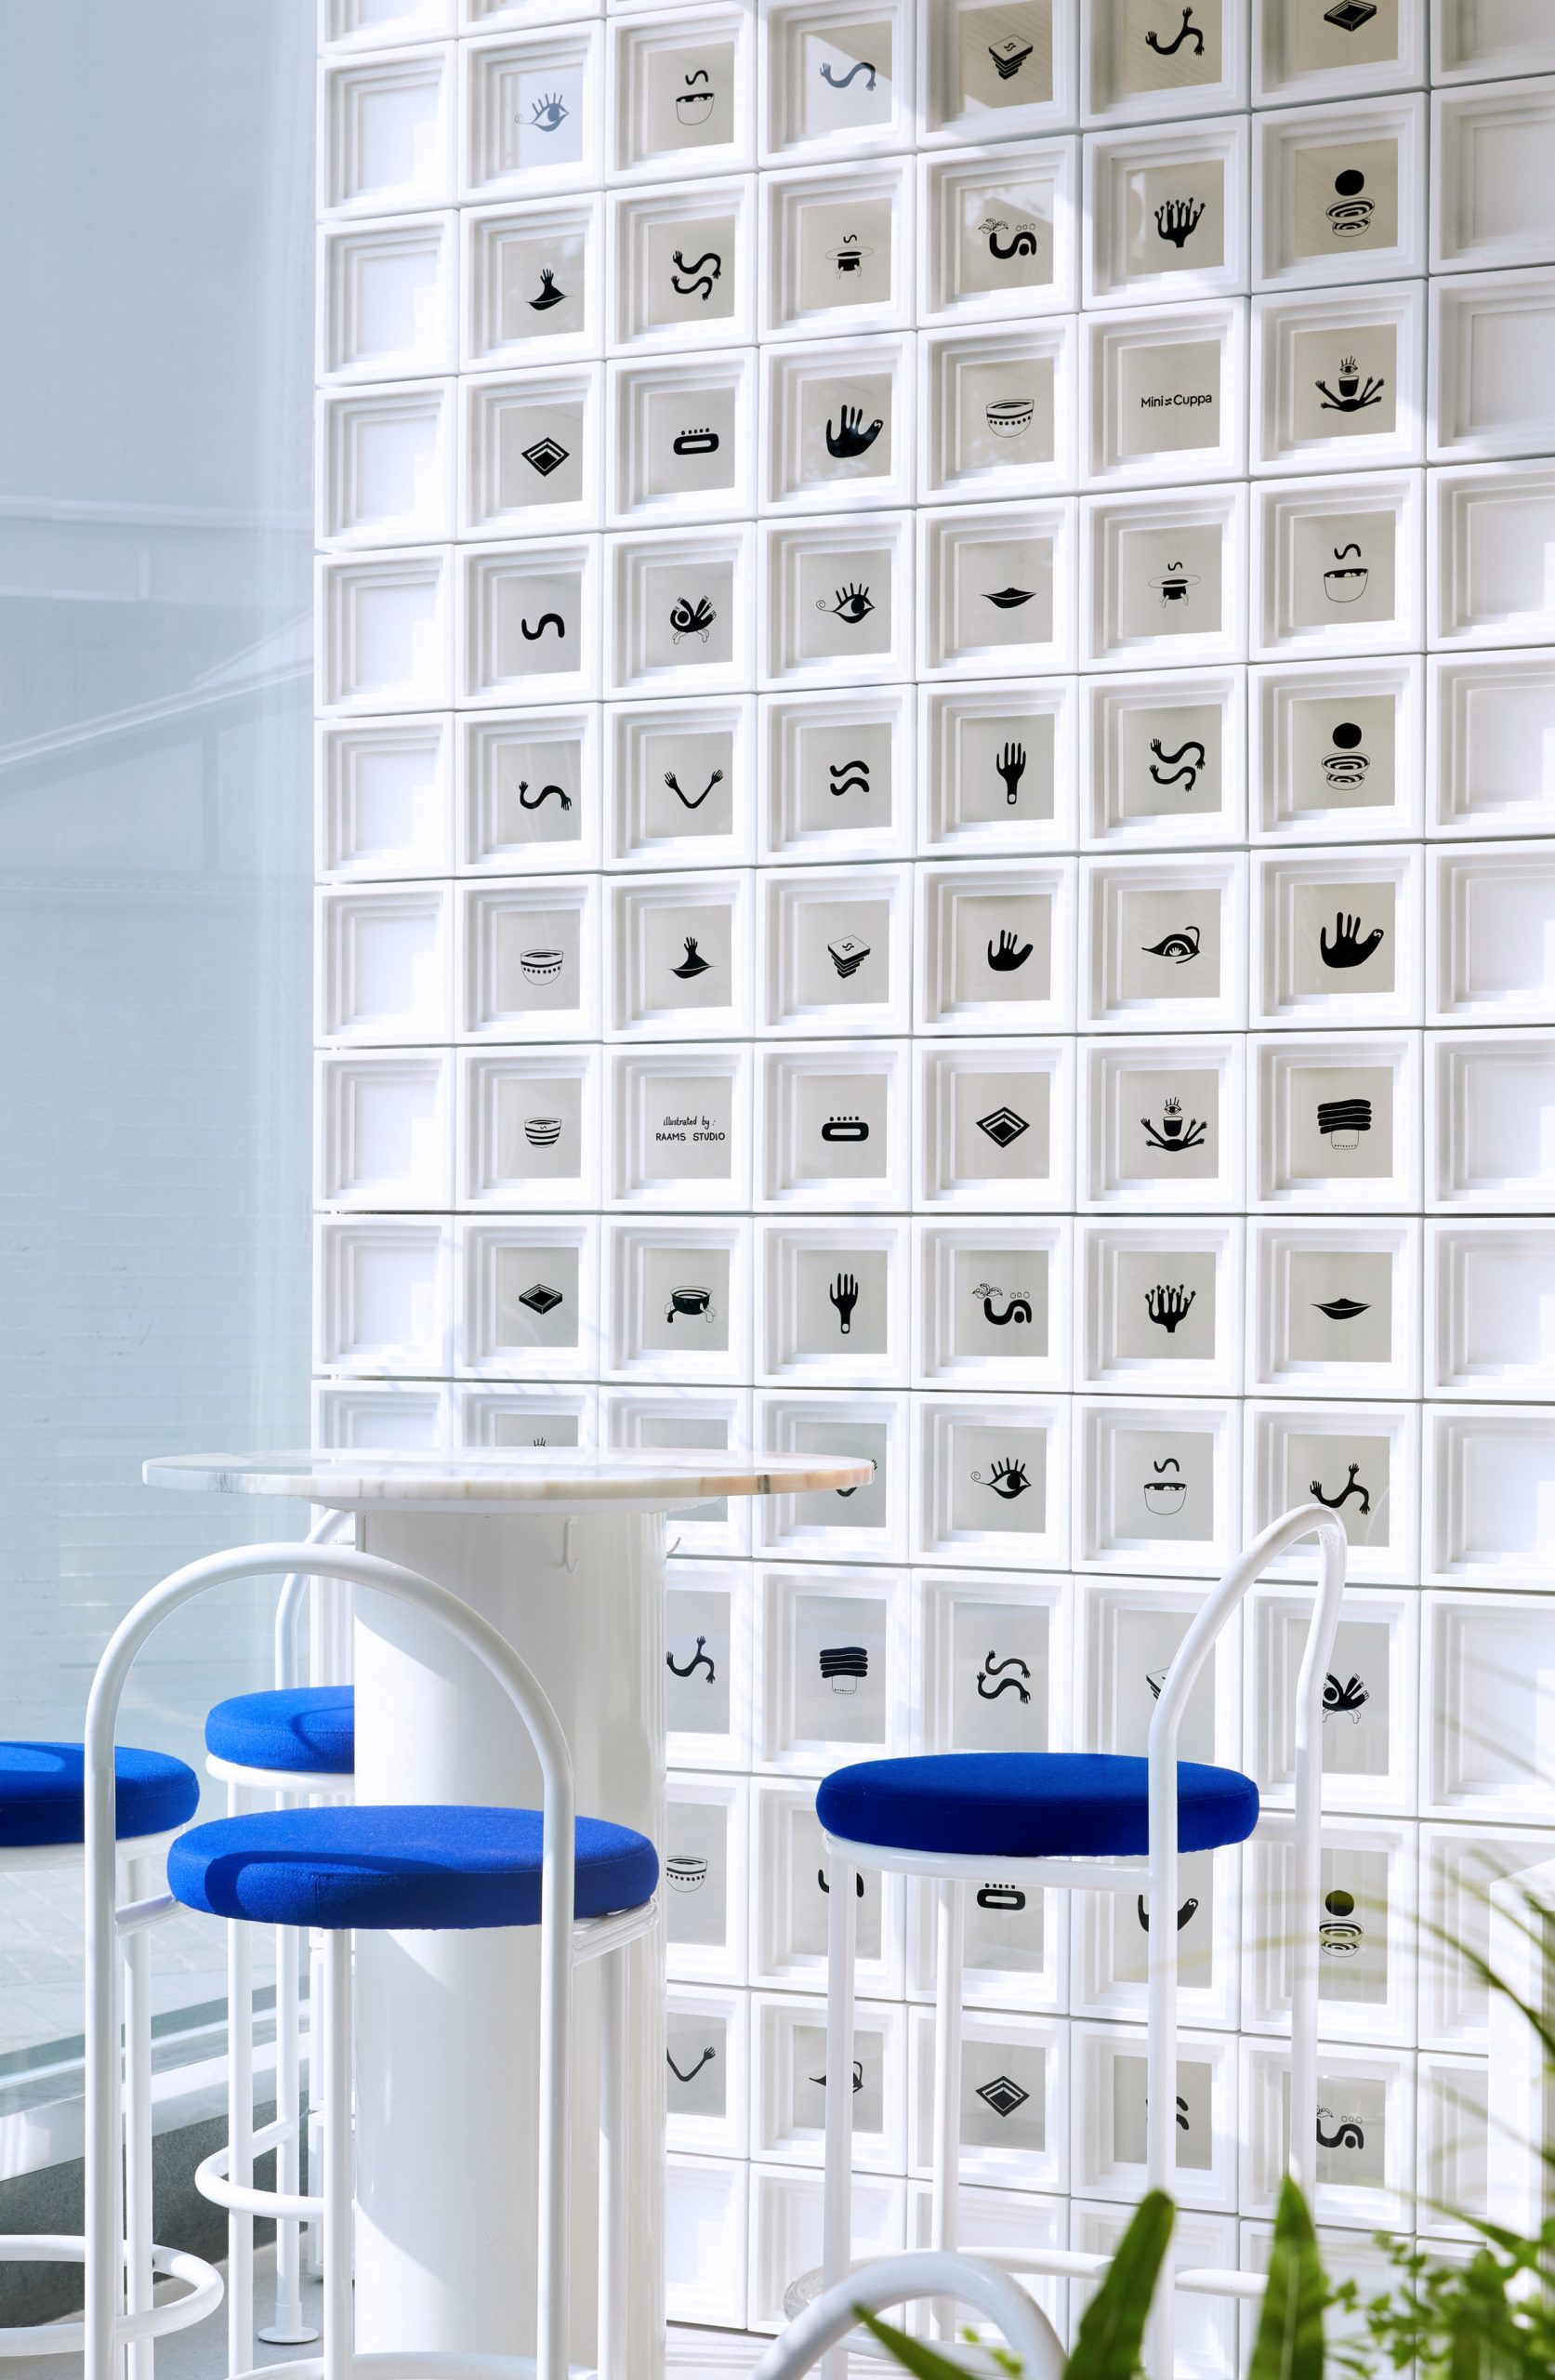 Wall of white cubes and small seating area in Shanghai's Mini Cuppa cafe